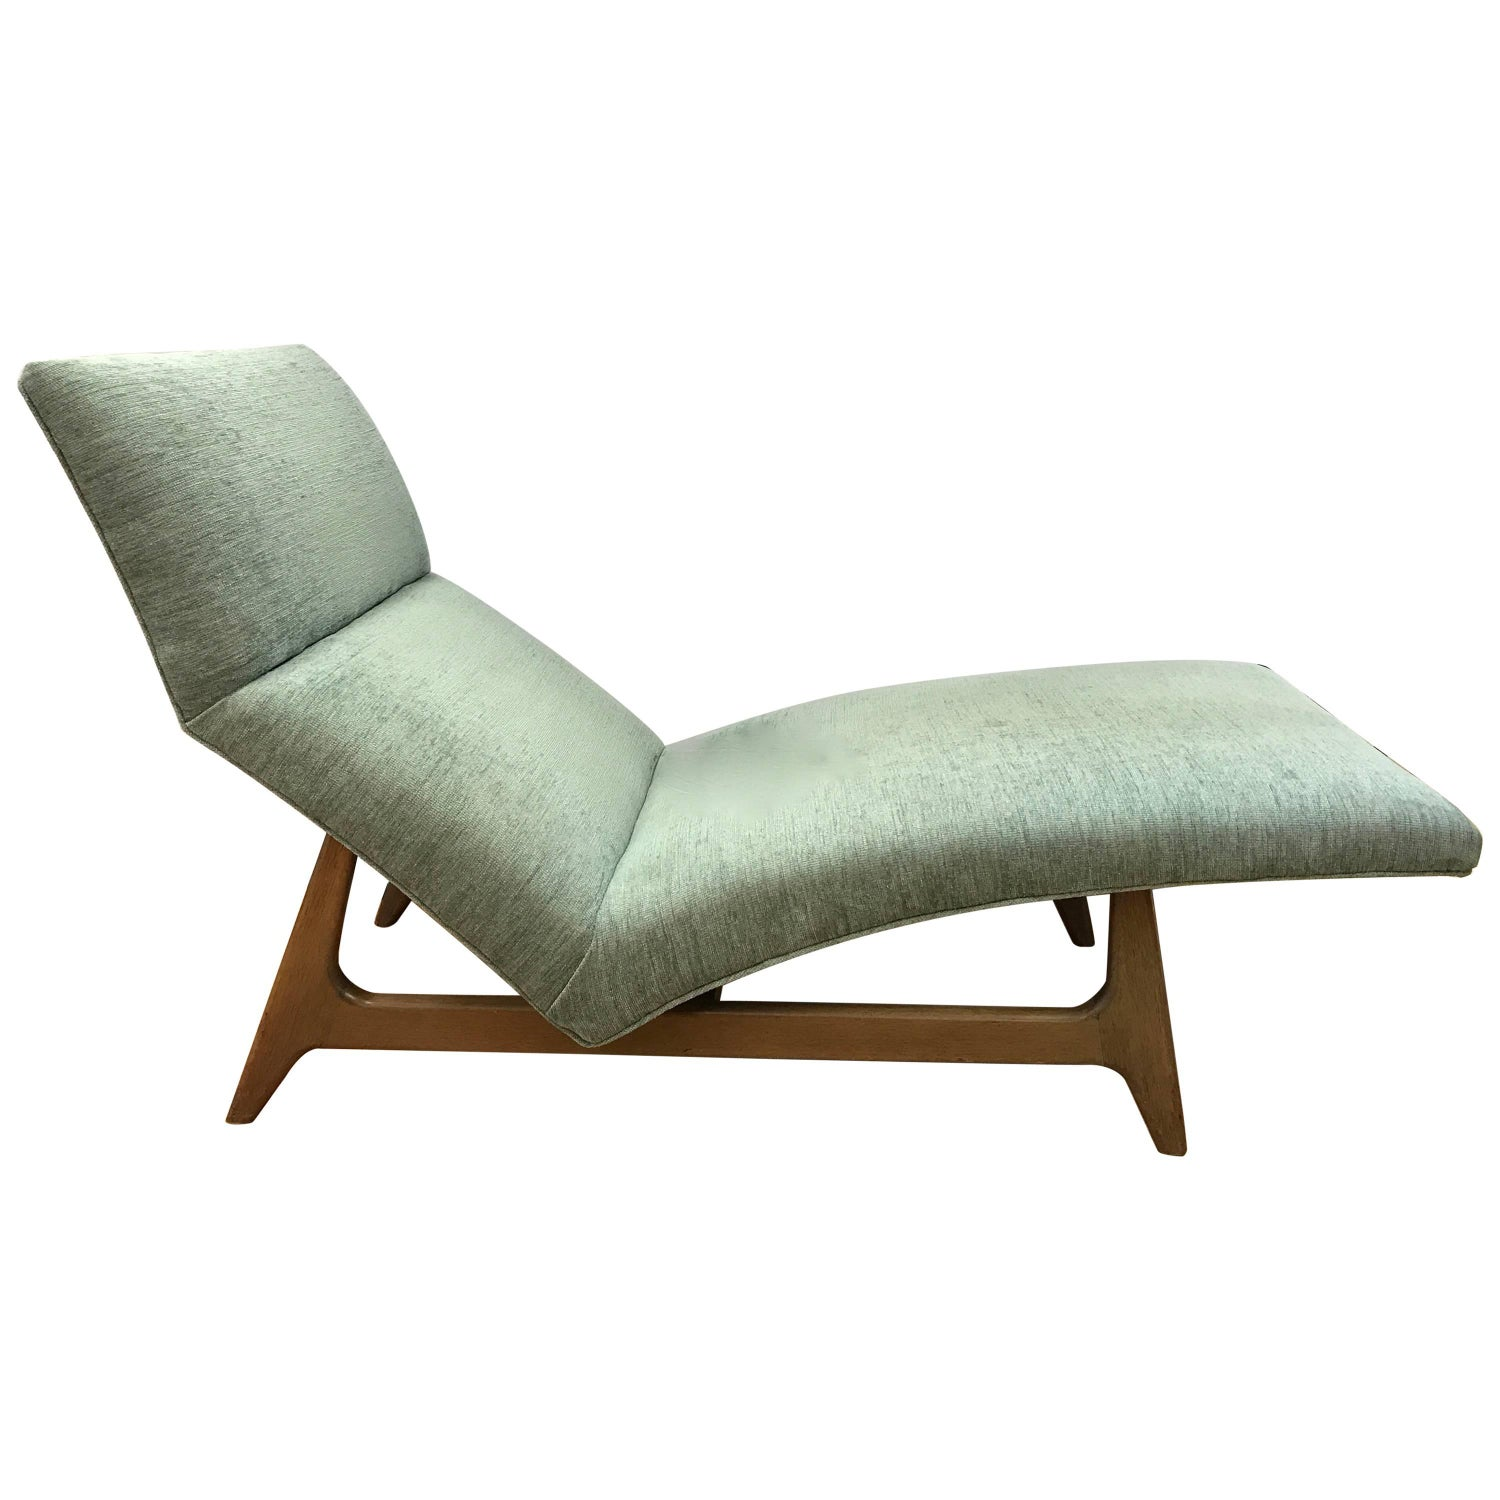 Adrian Pearsall Brutalist Rocking Lounge Chaise Lounge Chair